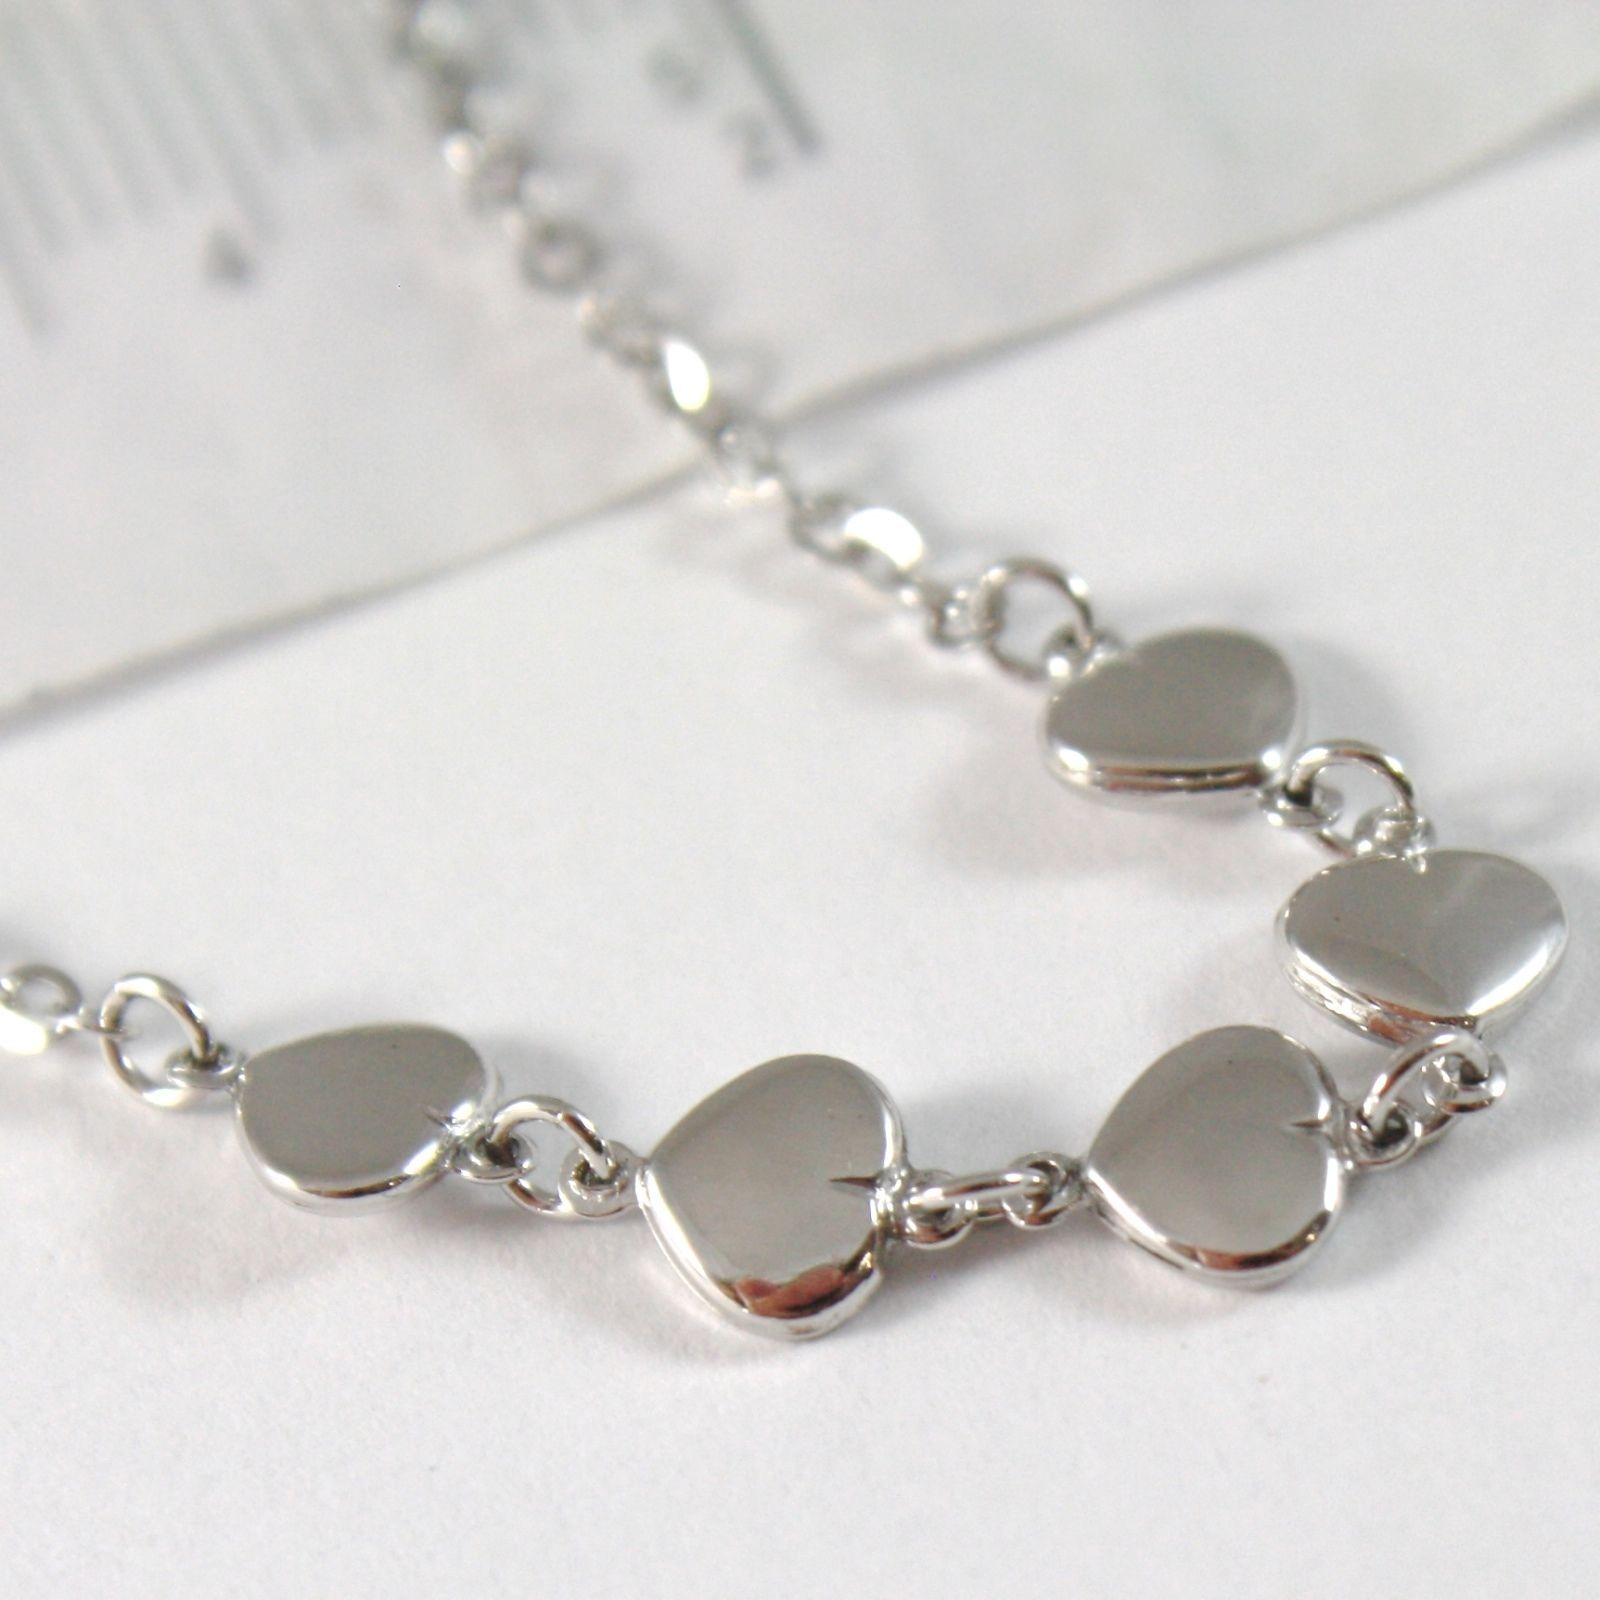 WHITE GOLD BRACELET 750 18K WITH ROWS OF HEARTS, HEART, LENGTH 18 CM